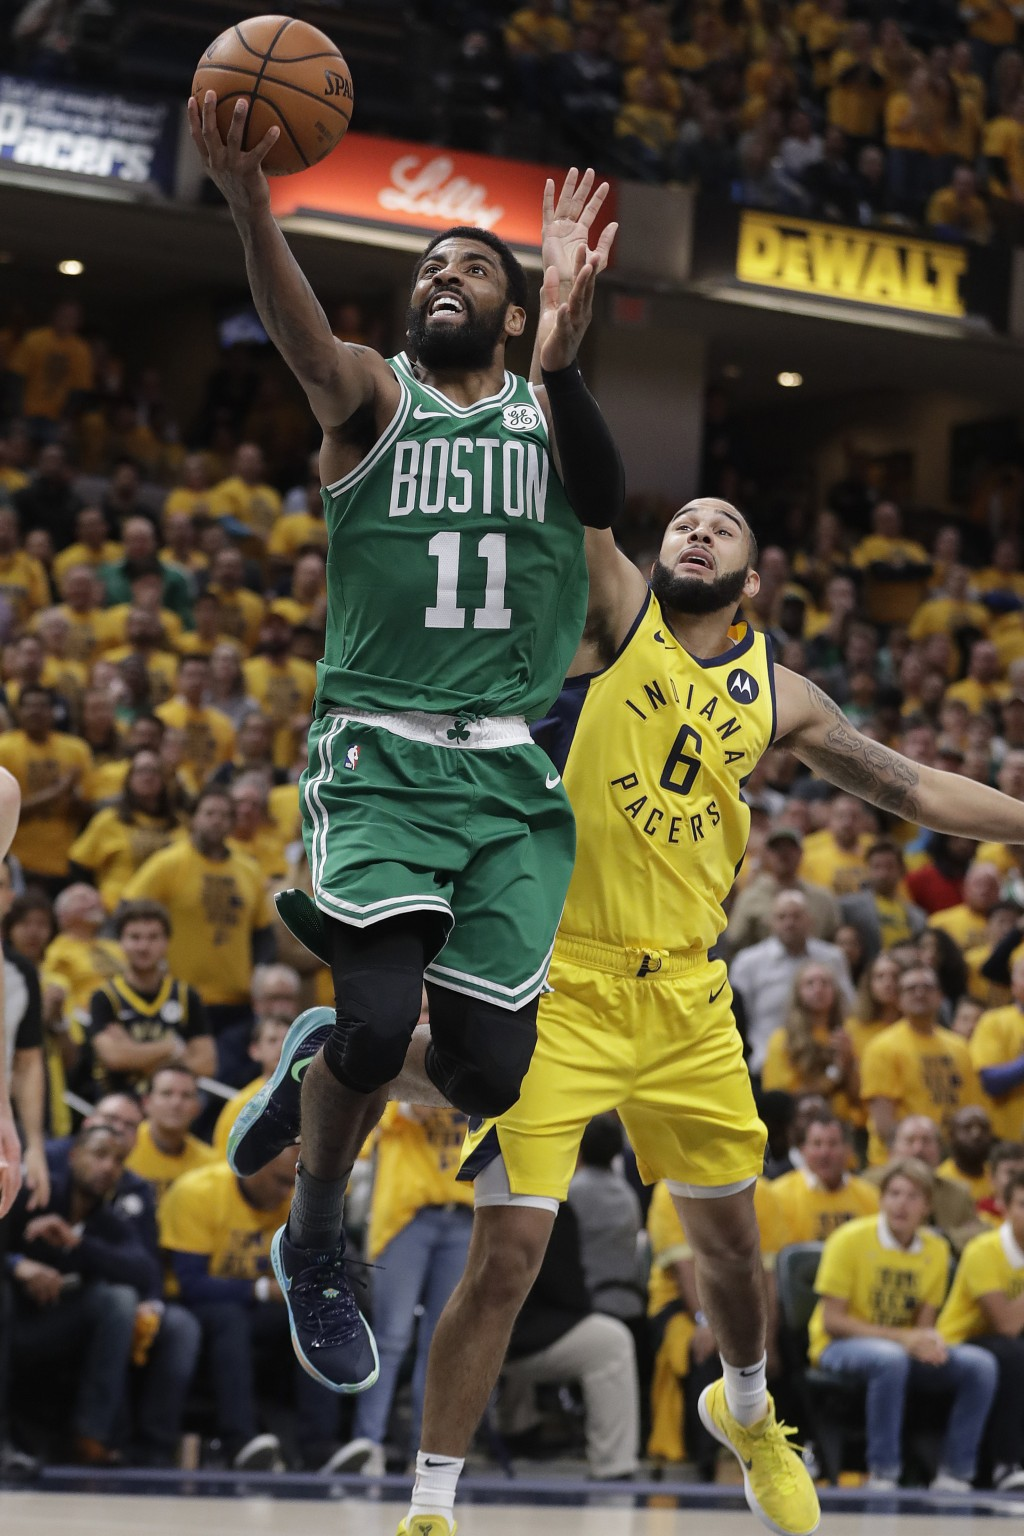 FILE - In this April 19, 2019, file photo, Boston Celtics' Kyrie Irving (11) shoots against Indiana Pacers' Cory Joseph (6) during the second half of ...